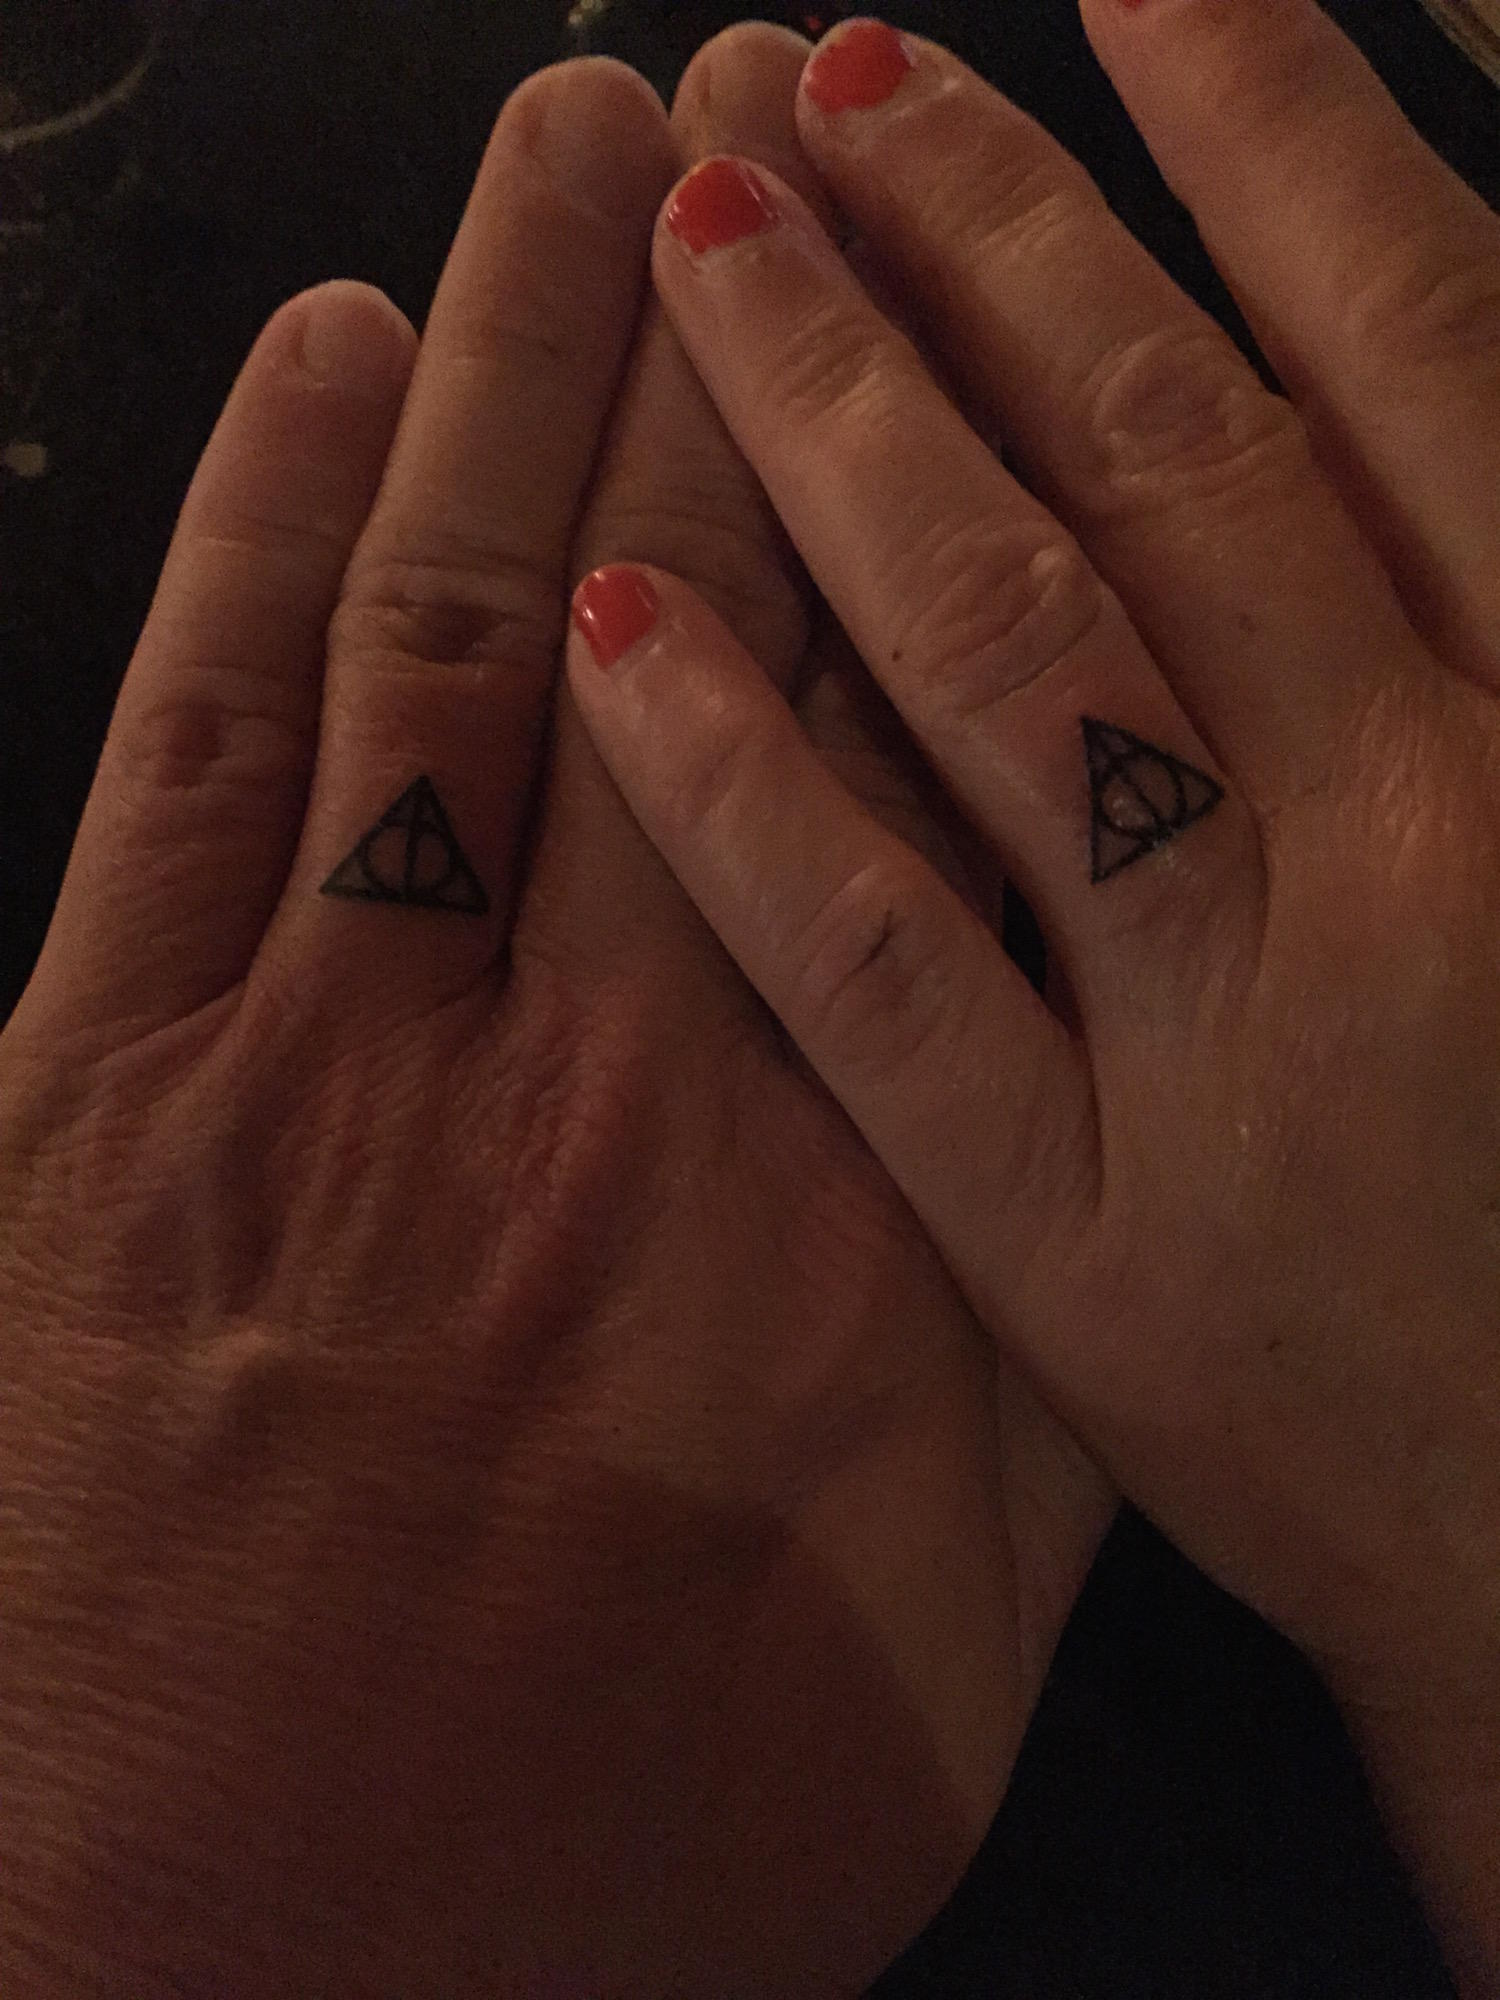 riff bonnie grice week wedding ink harry potter wedding bands We chose as our rings the Deathly Hallows from Harry Potter You PotterHeads will recognize the DH design the line within a circle within a triangle the